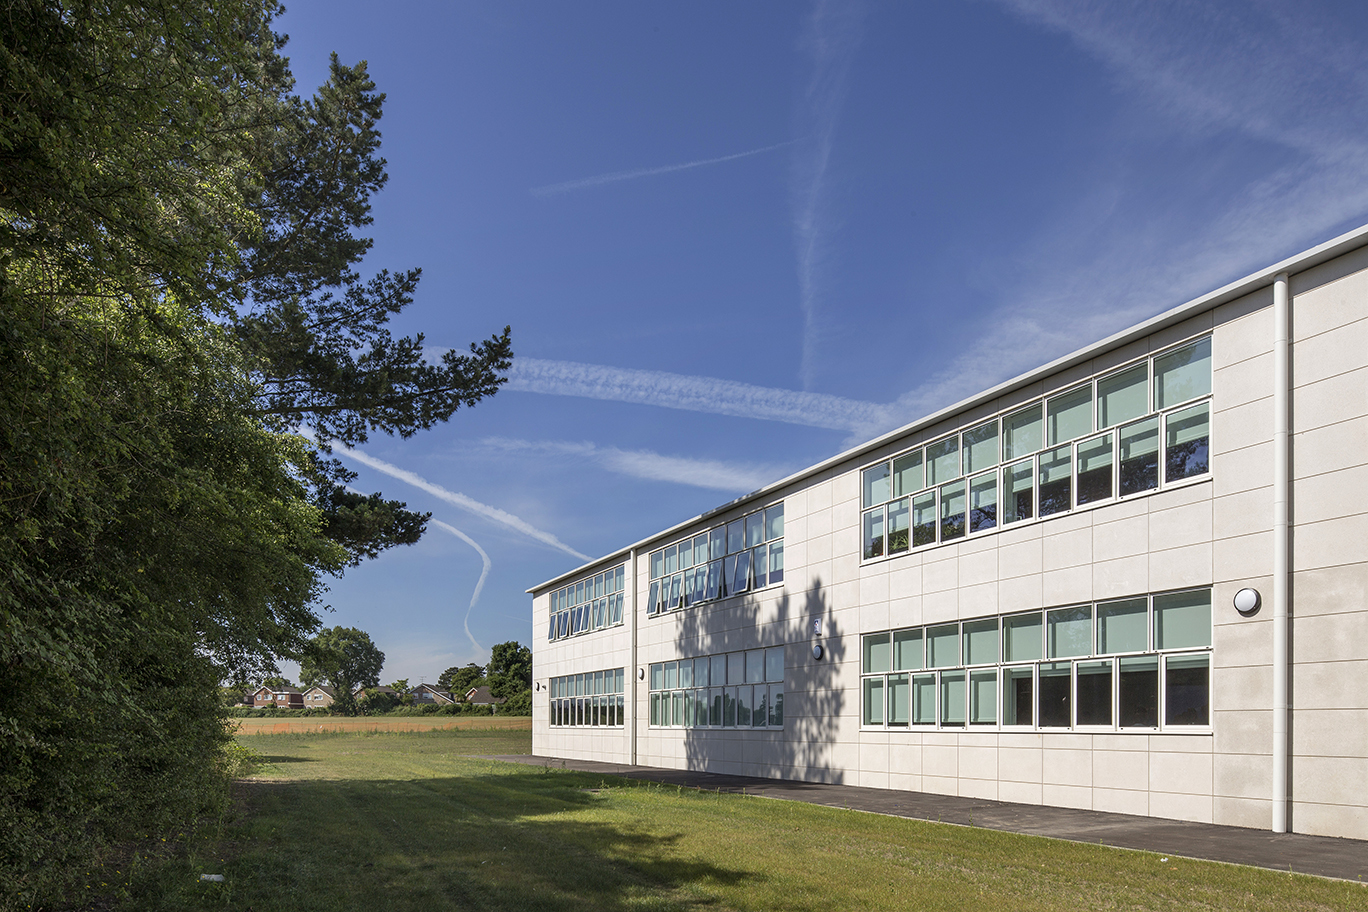 St Crispin's Science Block, Wokingham